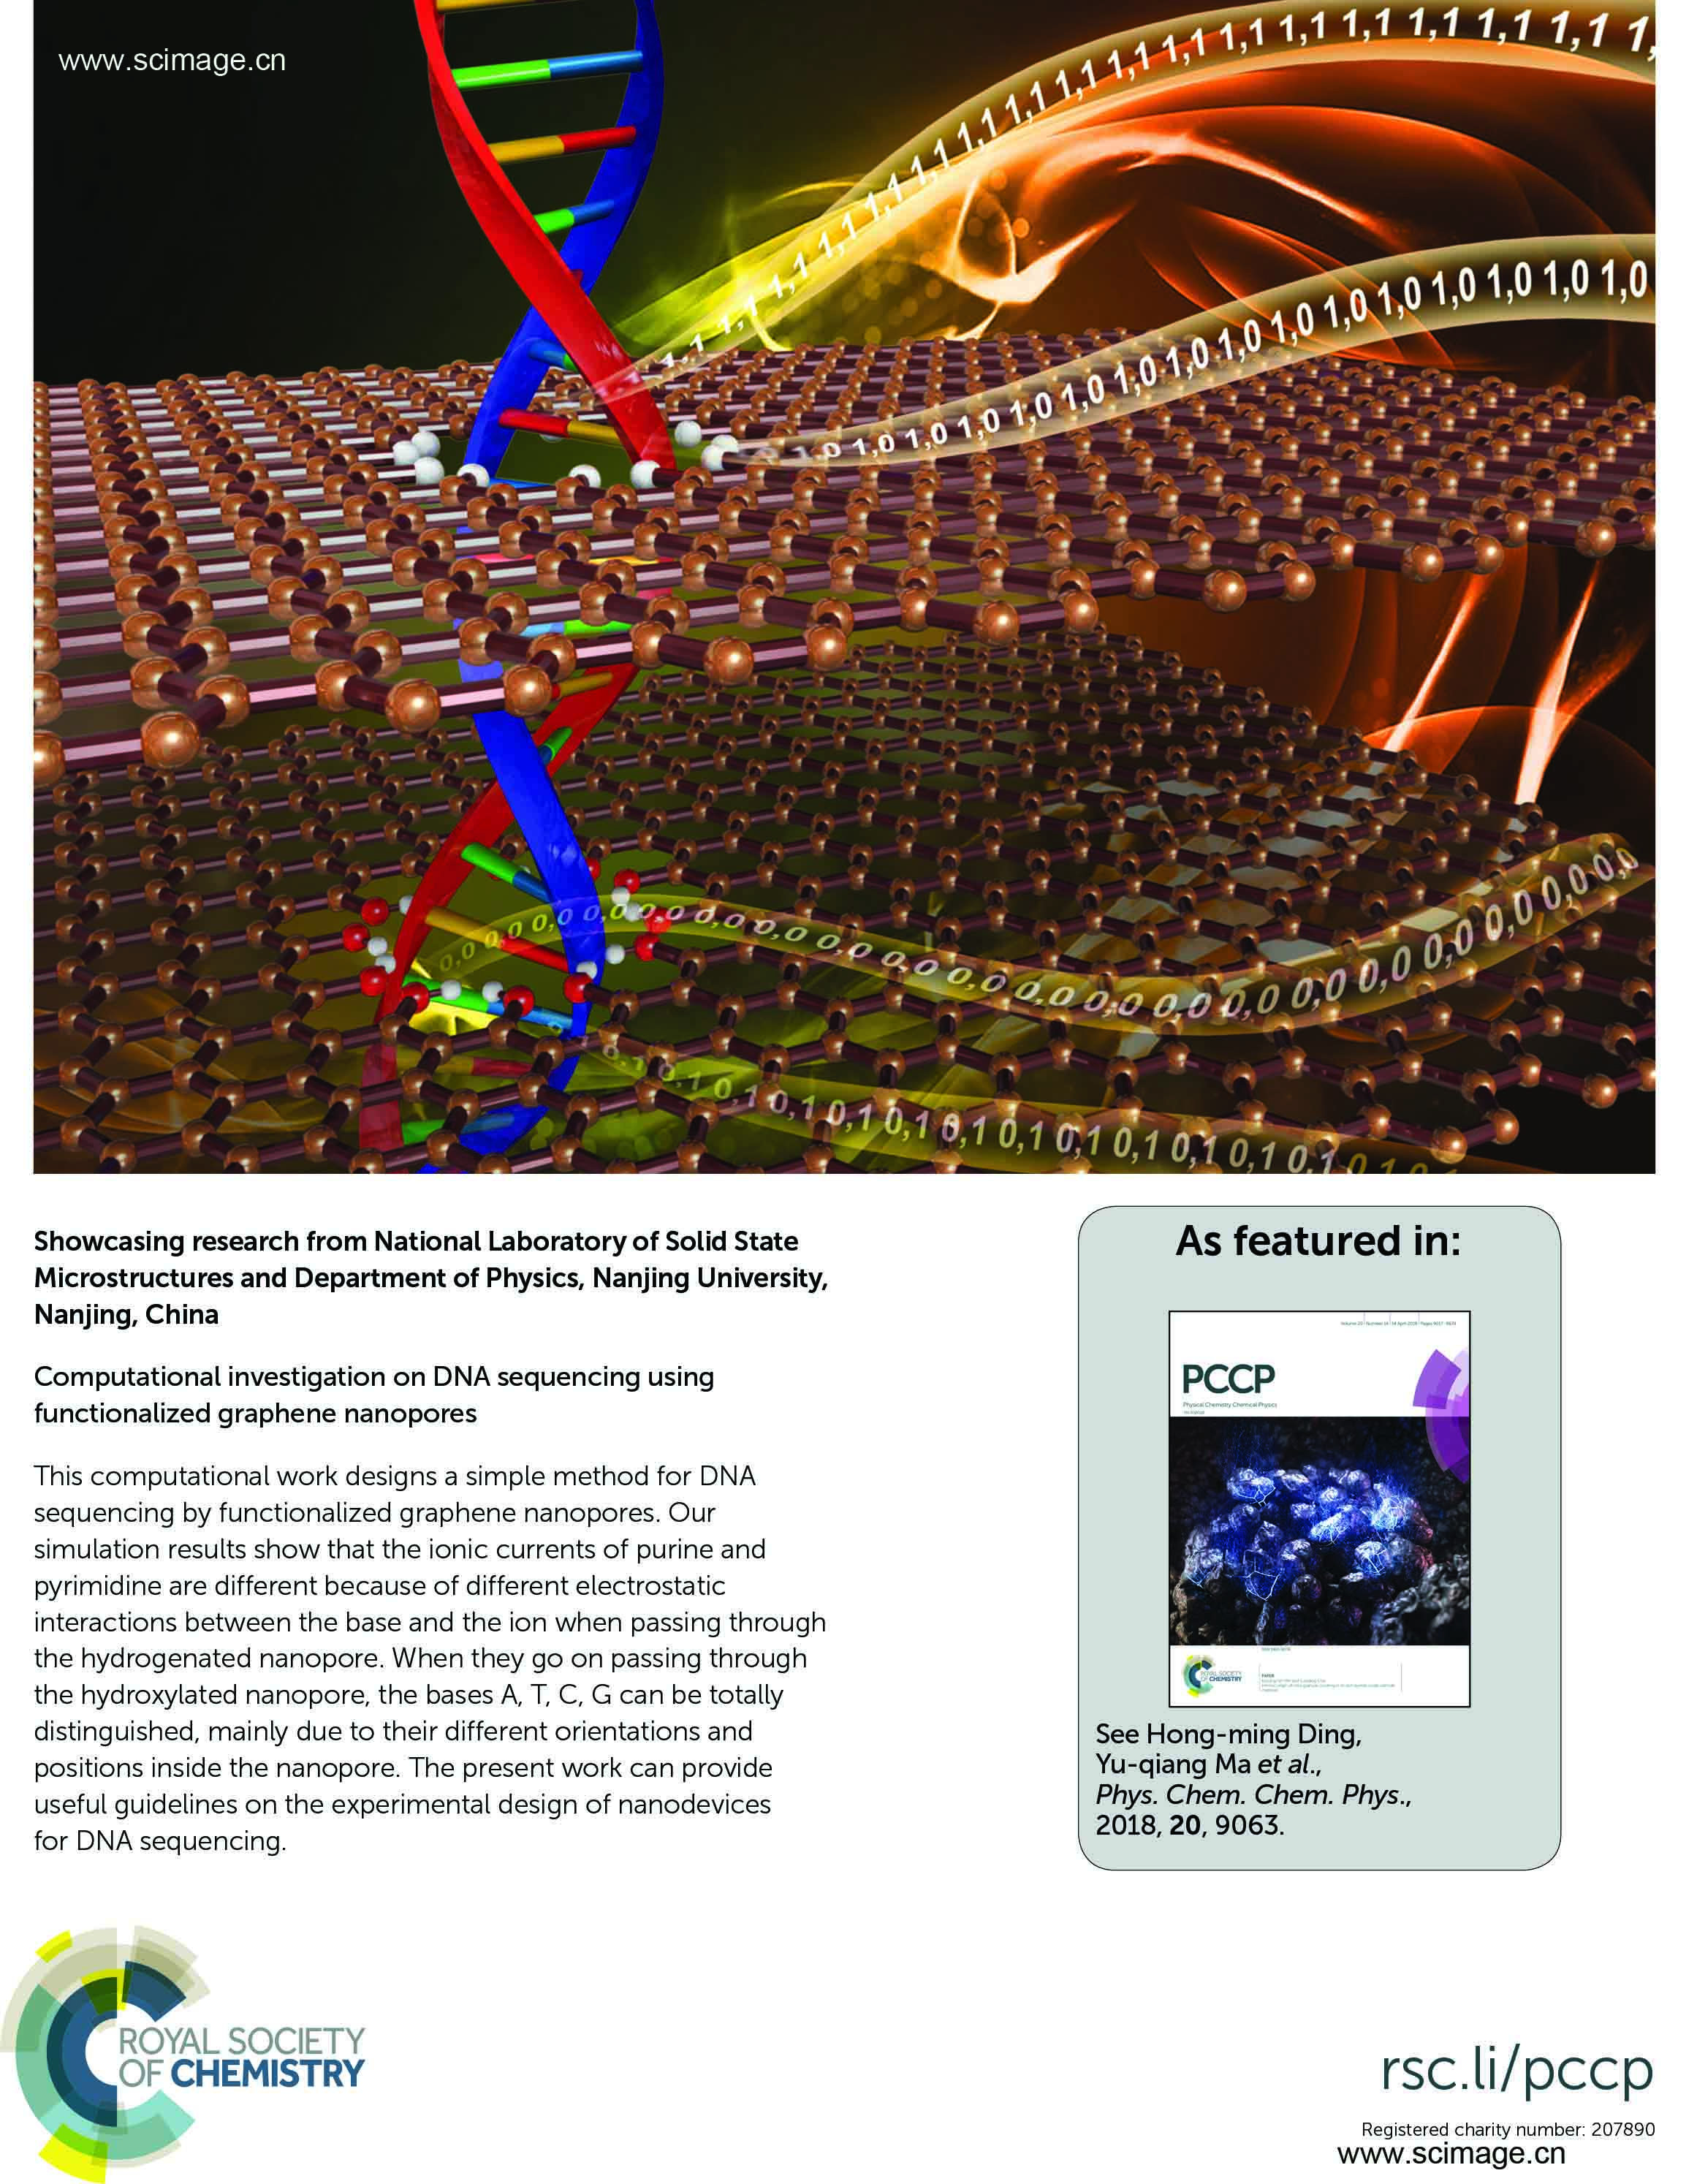 Computational investigation on DNA sequencing using functionalized graphene nanopores